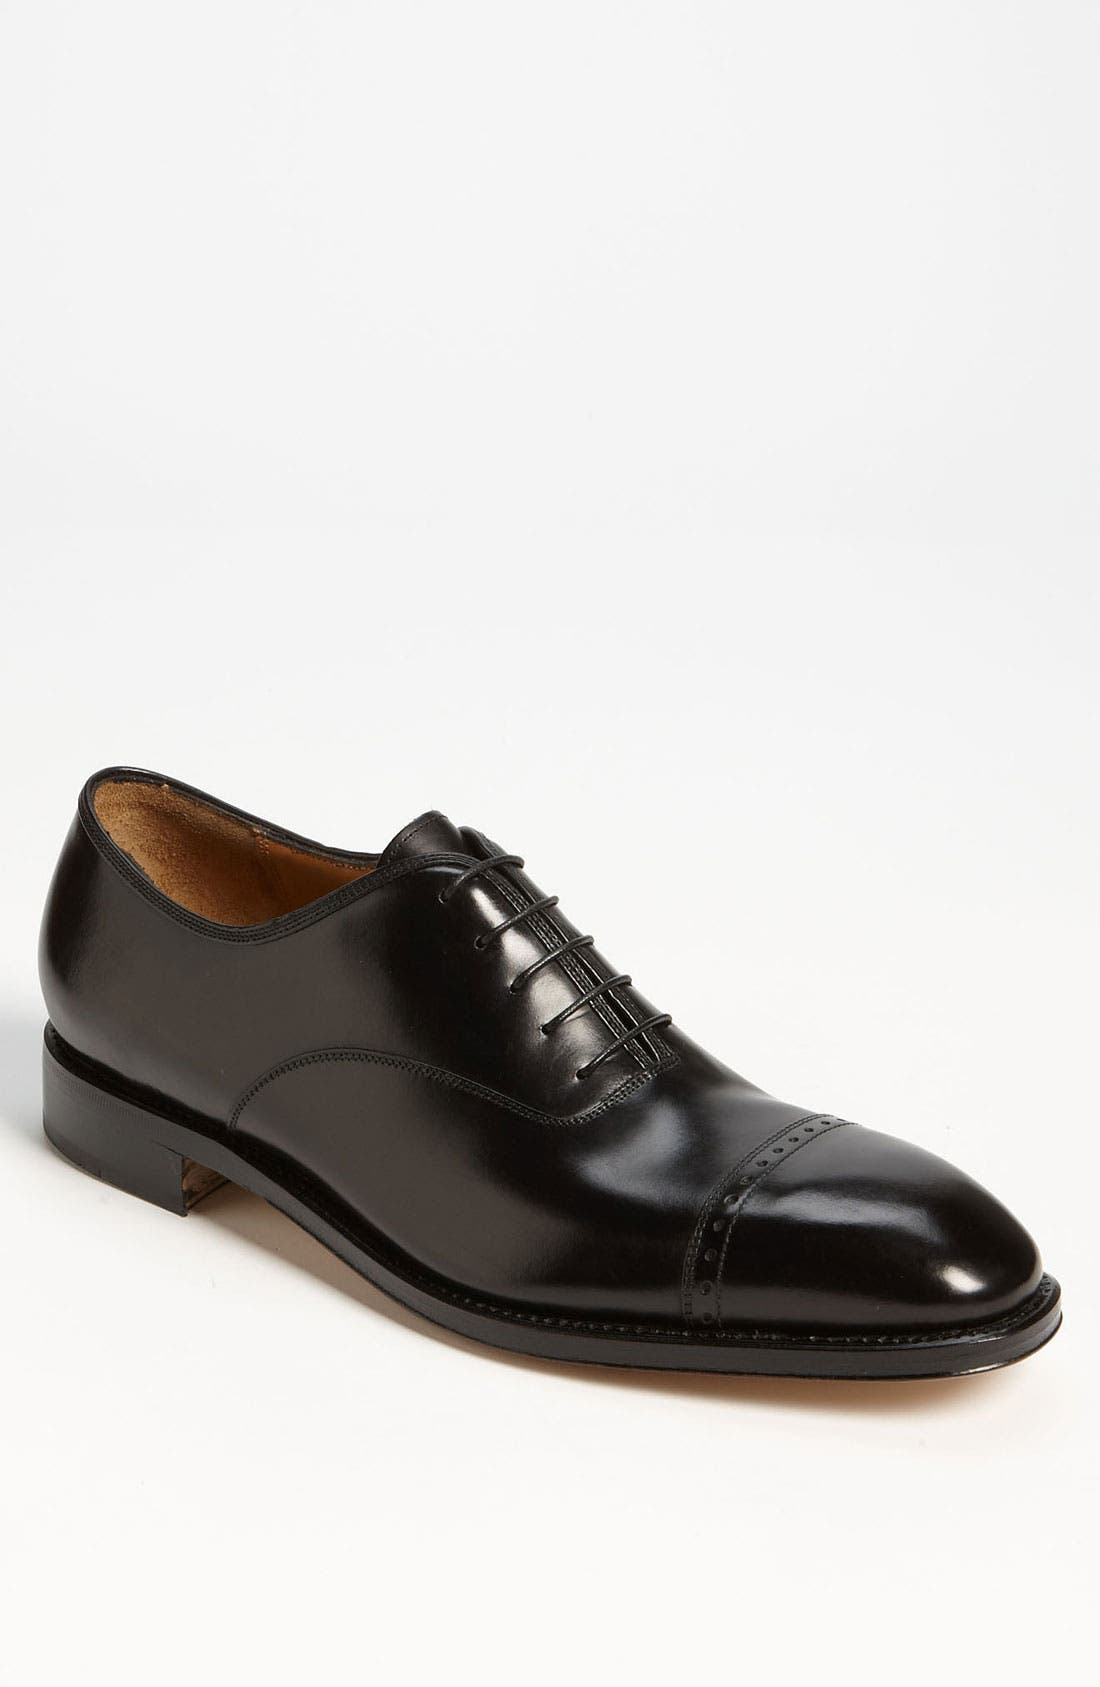 Alternate Image 1 Selected - Salvatore Ferragamo 'Domino' Cap Toe Oxford (Online Only)